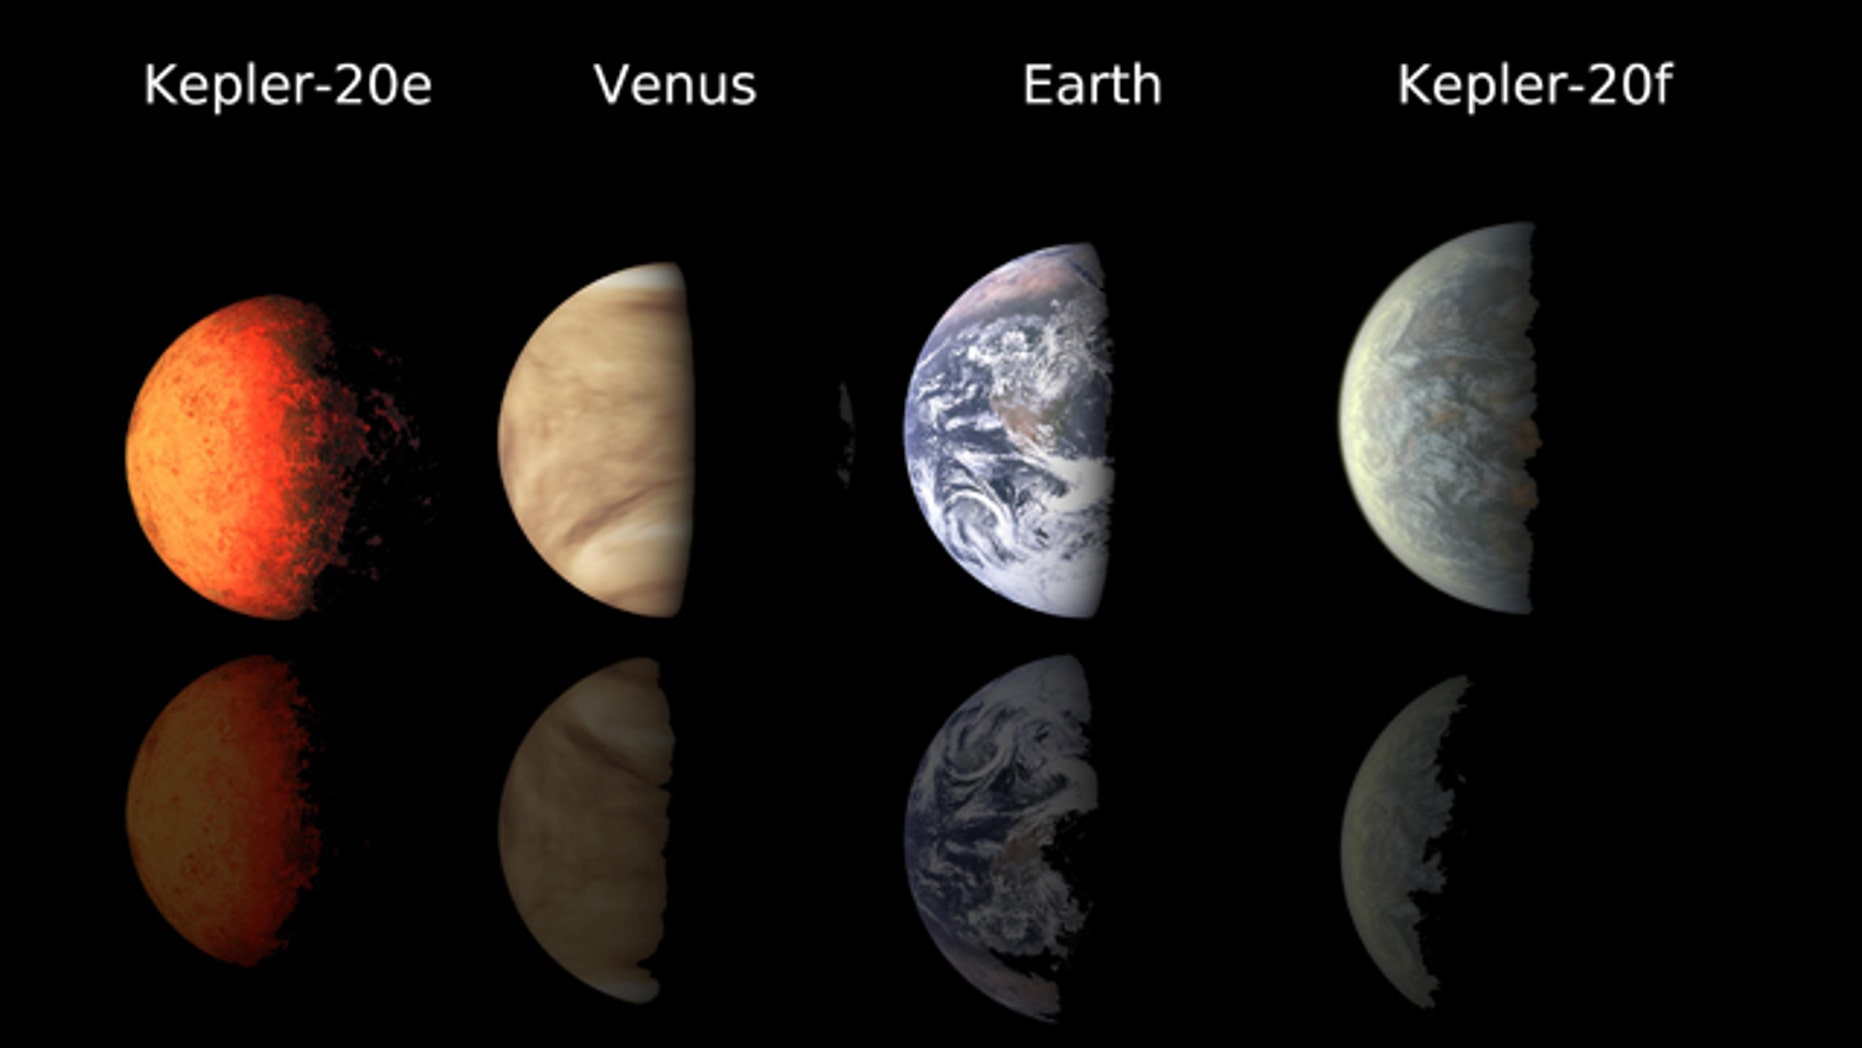 This chart compares the first Earth-size planets found around a sun-like star to planets in our own solar system, Earth and Venus. NASA's Kepler mission discovered the new found planets, called Kepler-20e and Kepler-20f. Kepler-20e is slightly smaller than Venus with a radius .87 times that of Earth. Kepler-20f is a bit larger than Earth at 1.03 times the radius of Earth.